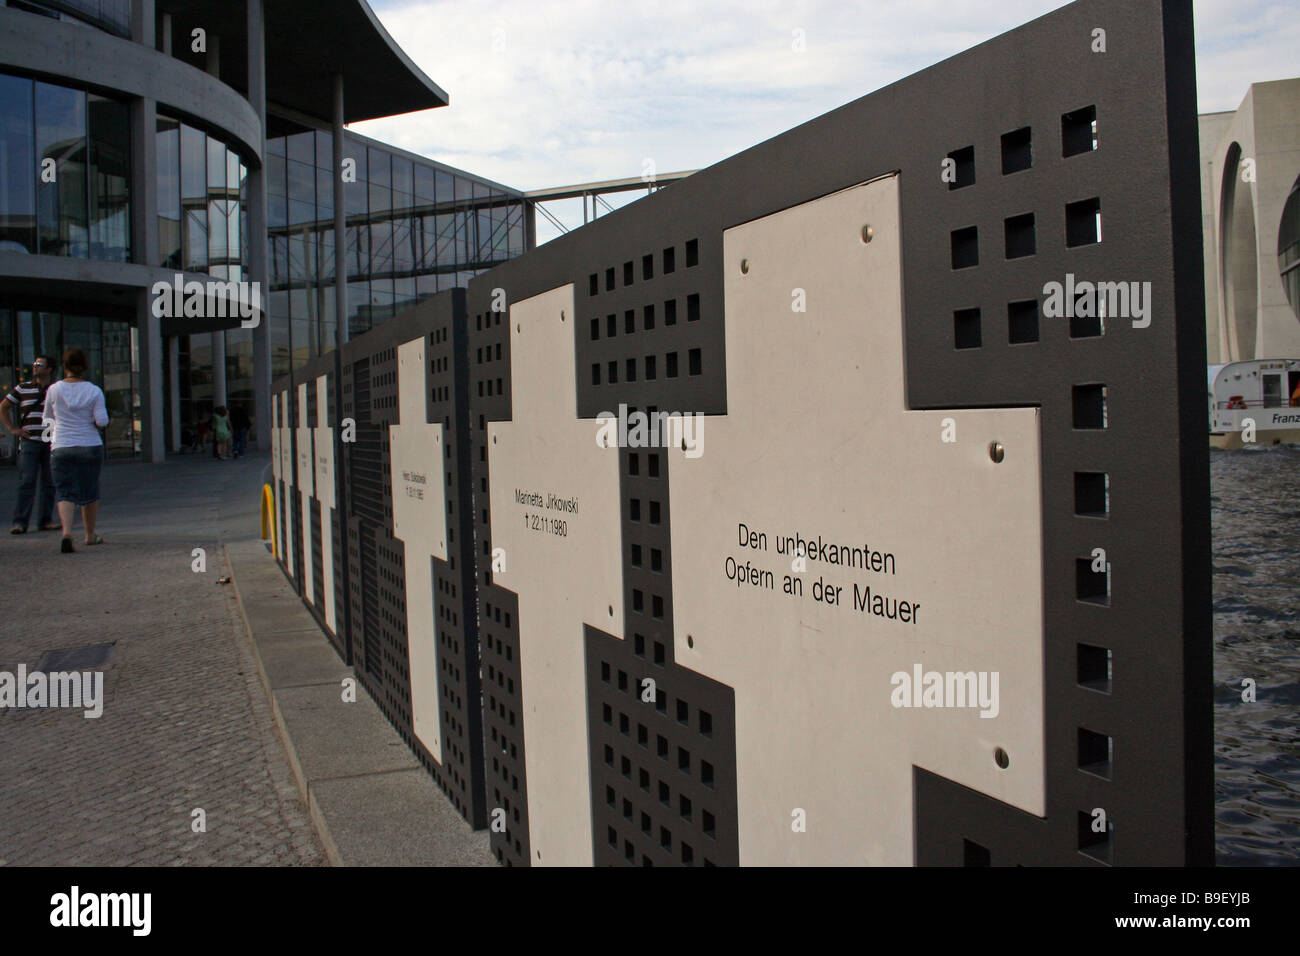 Memorial crosses for people who died at the Berlin Wall, Berlin, Germany Stock Photo